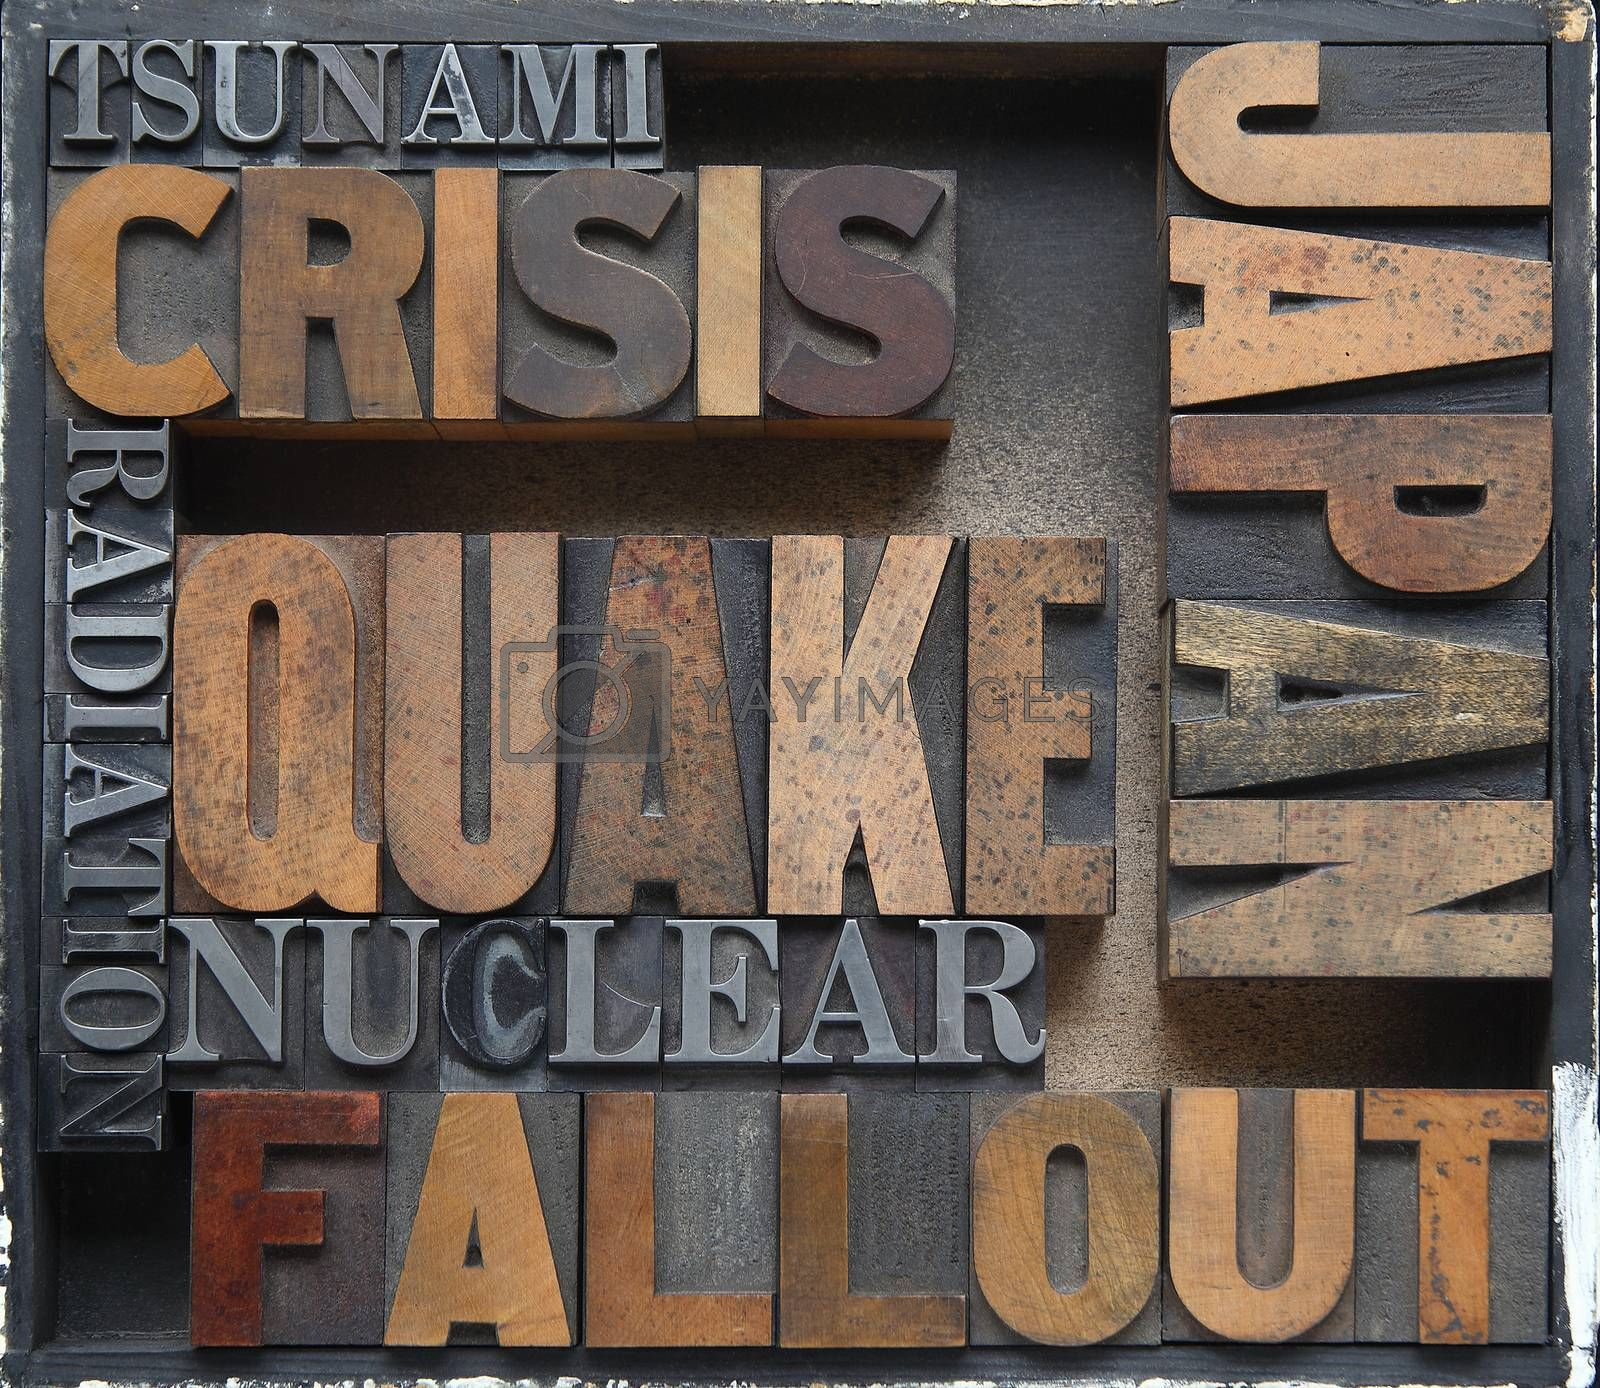 words related to Japan's earthquake, tsunami and nuclear disasters in old wood and metal type